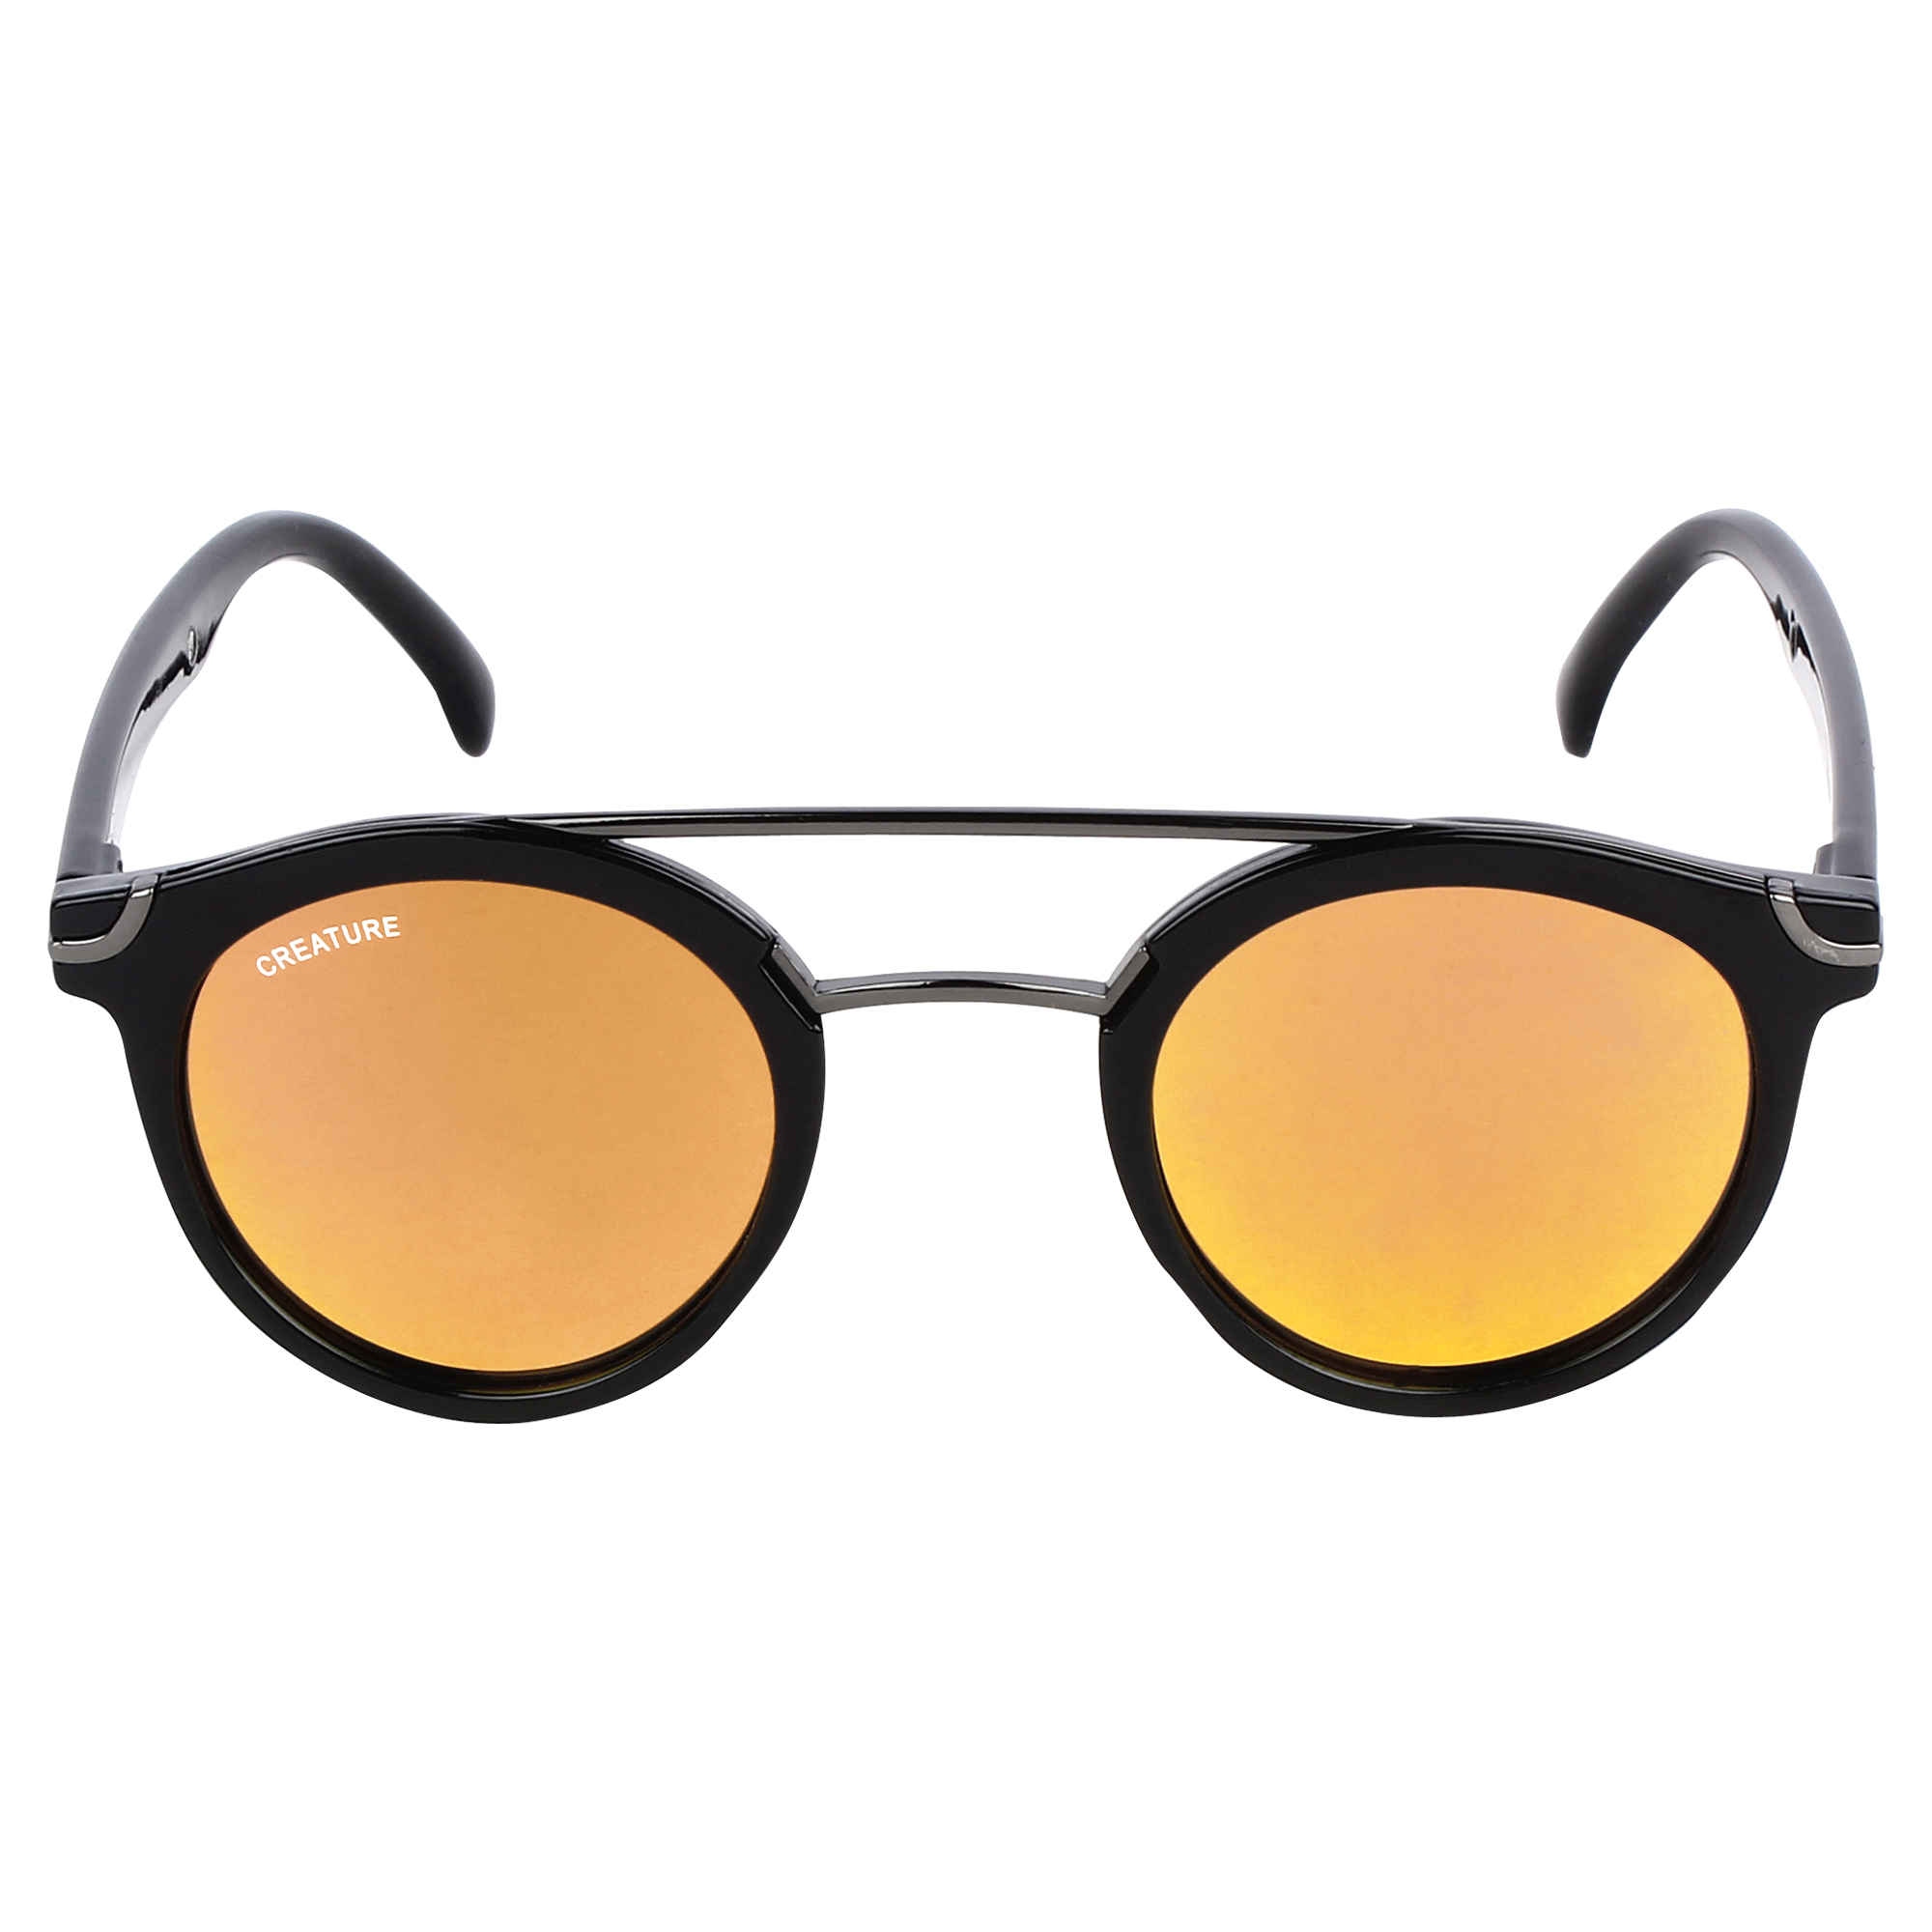 CREATURE   CREATURE Silver Stripped Round Sunglasses (Lens-Yellow Frame-Silver)